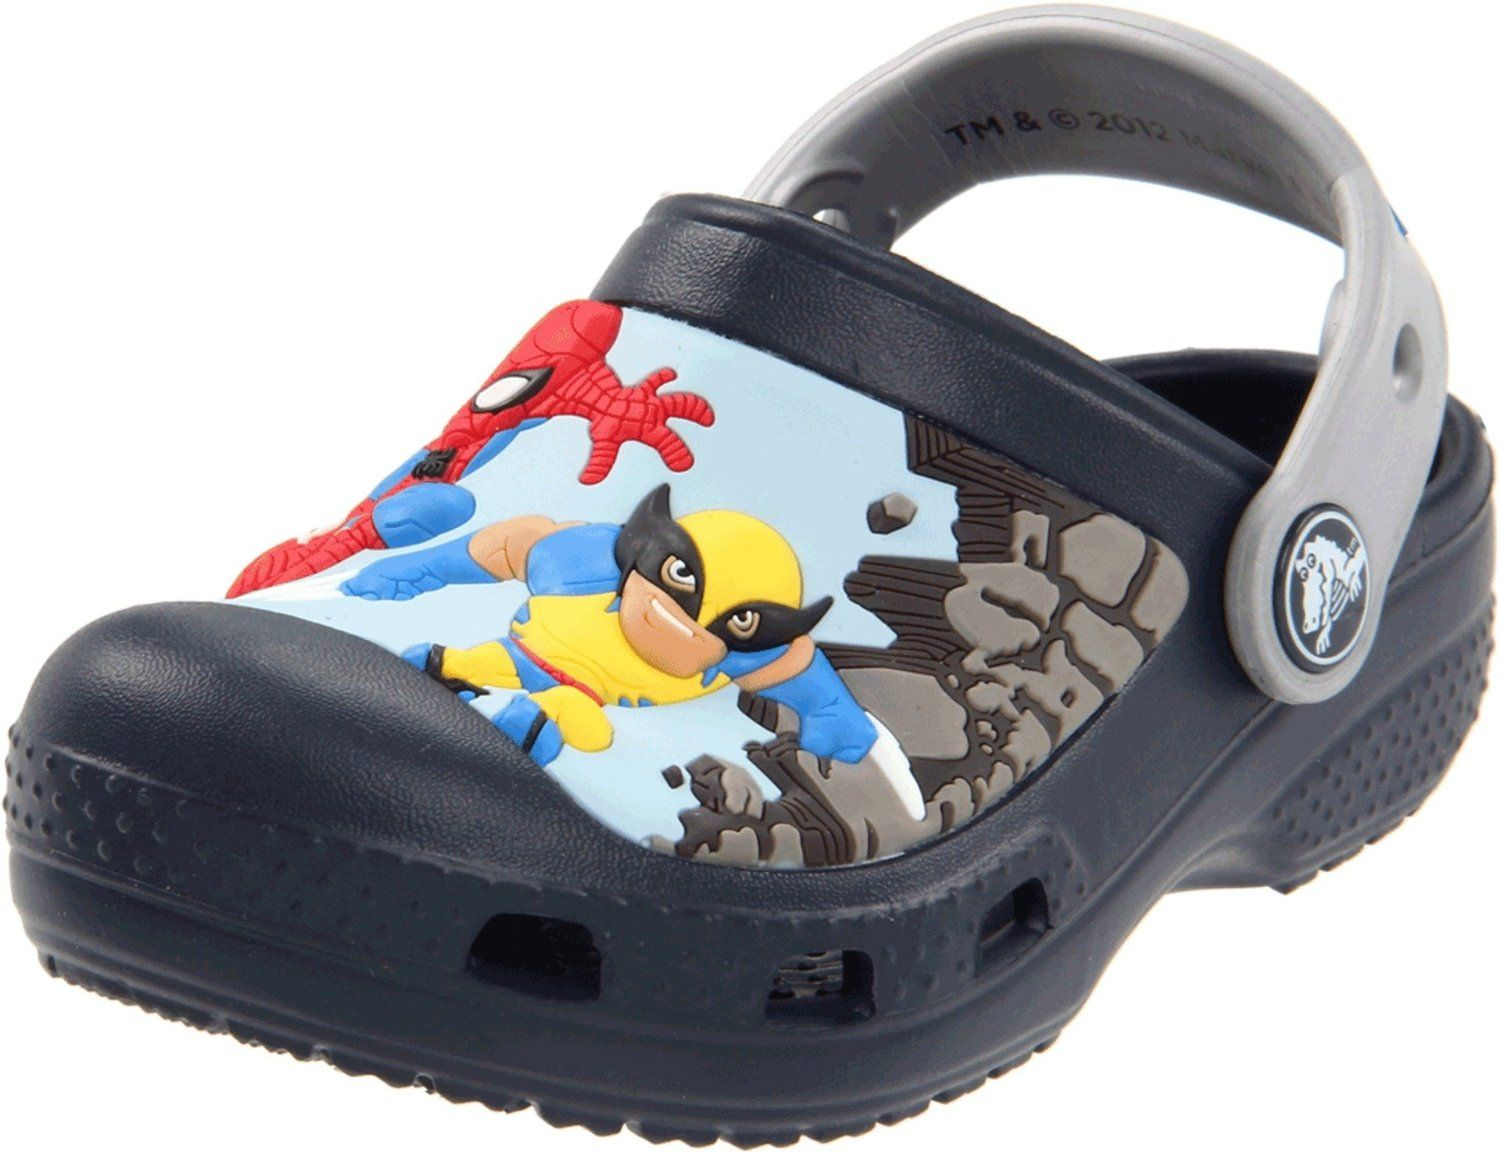 2ab951e4ecedc wolverine. awesome. | 4 my babies | Disney shoes, Shoes, Fashion